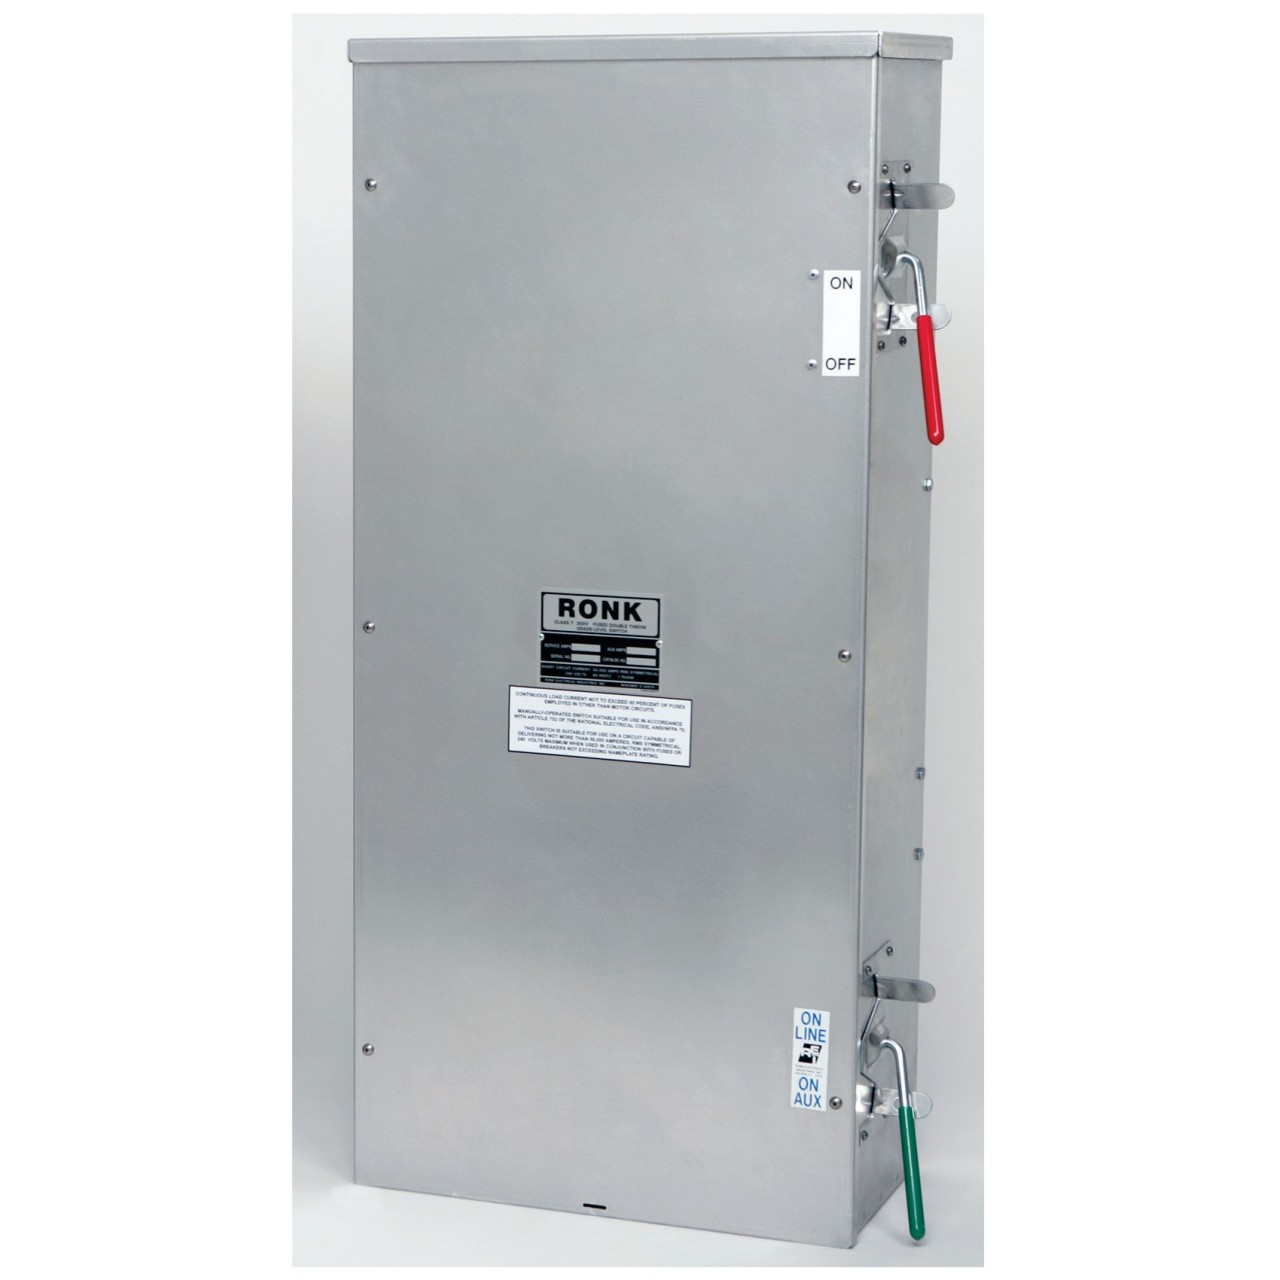 Ronk 7426-300 Transfer Switch (1Ph, 300A)